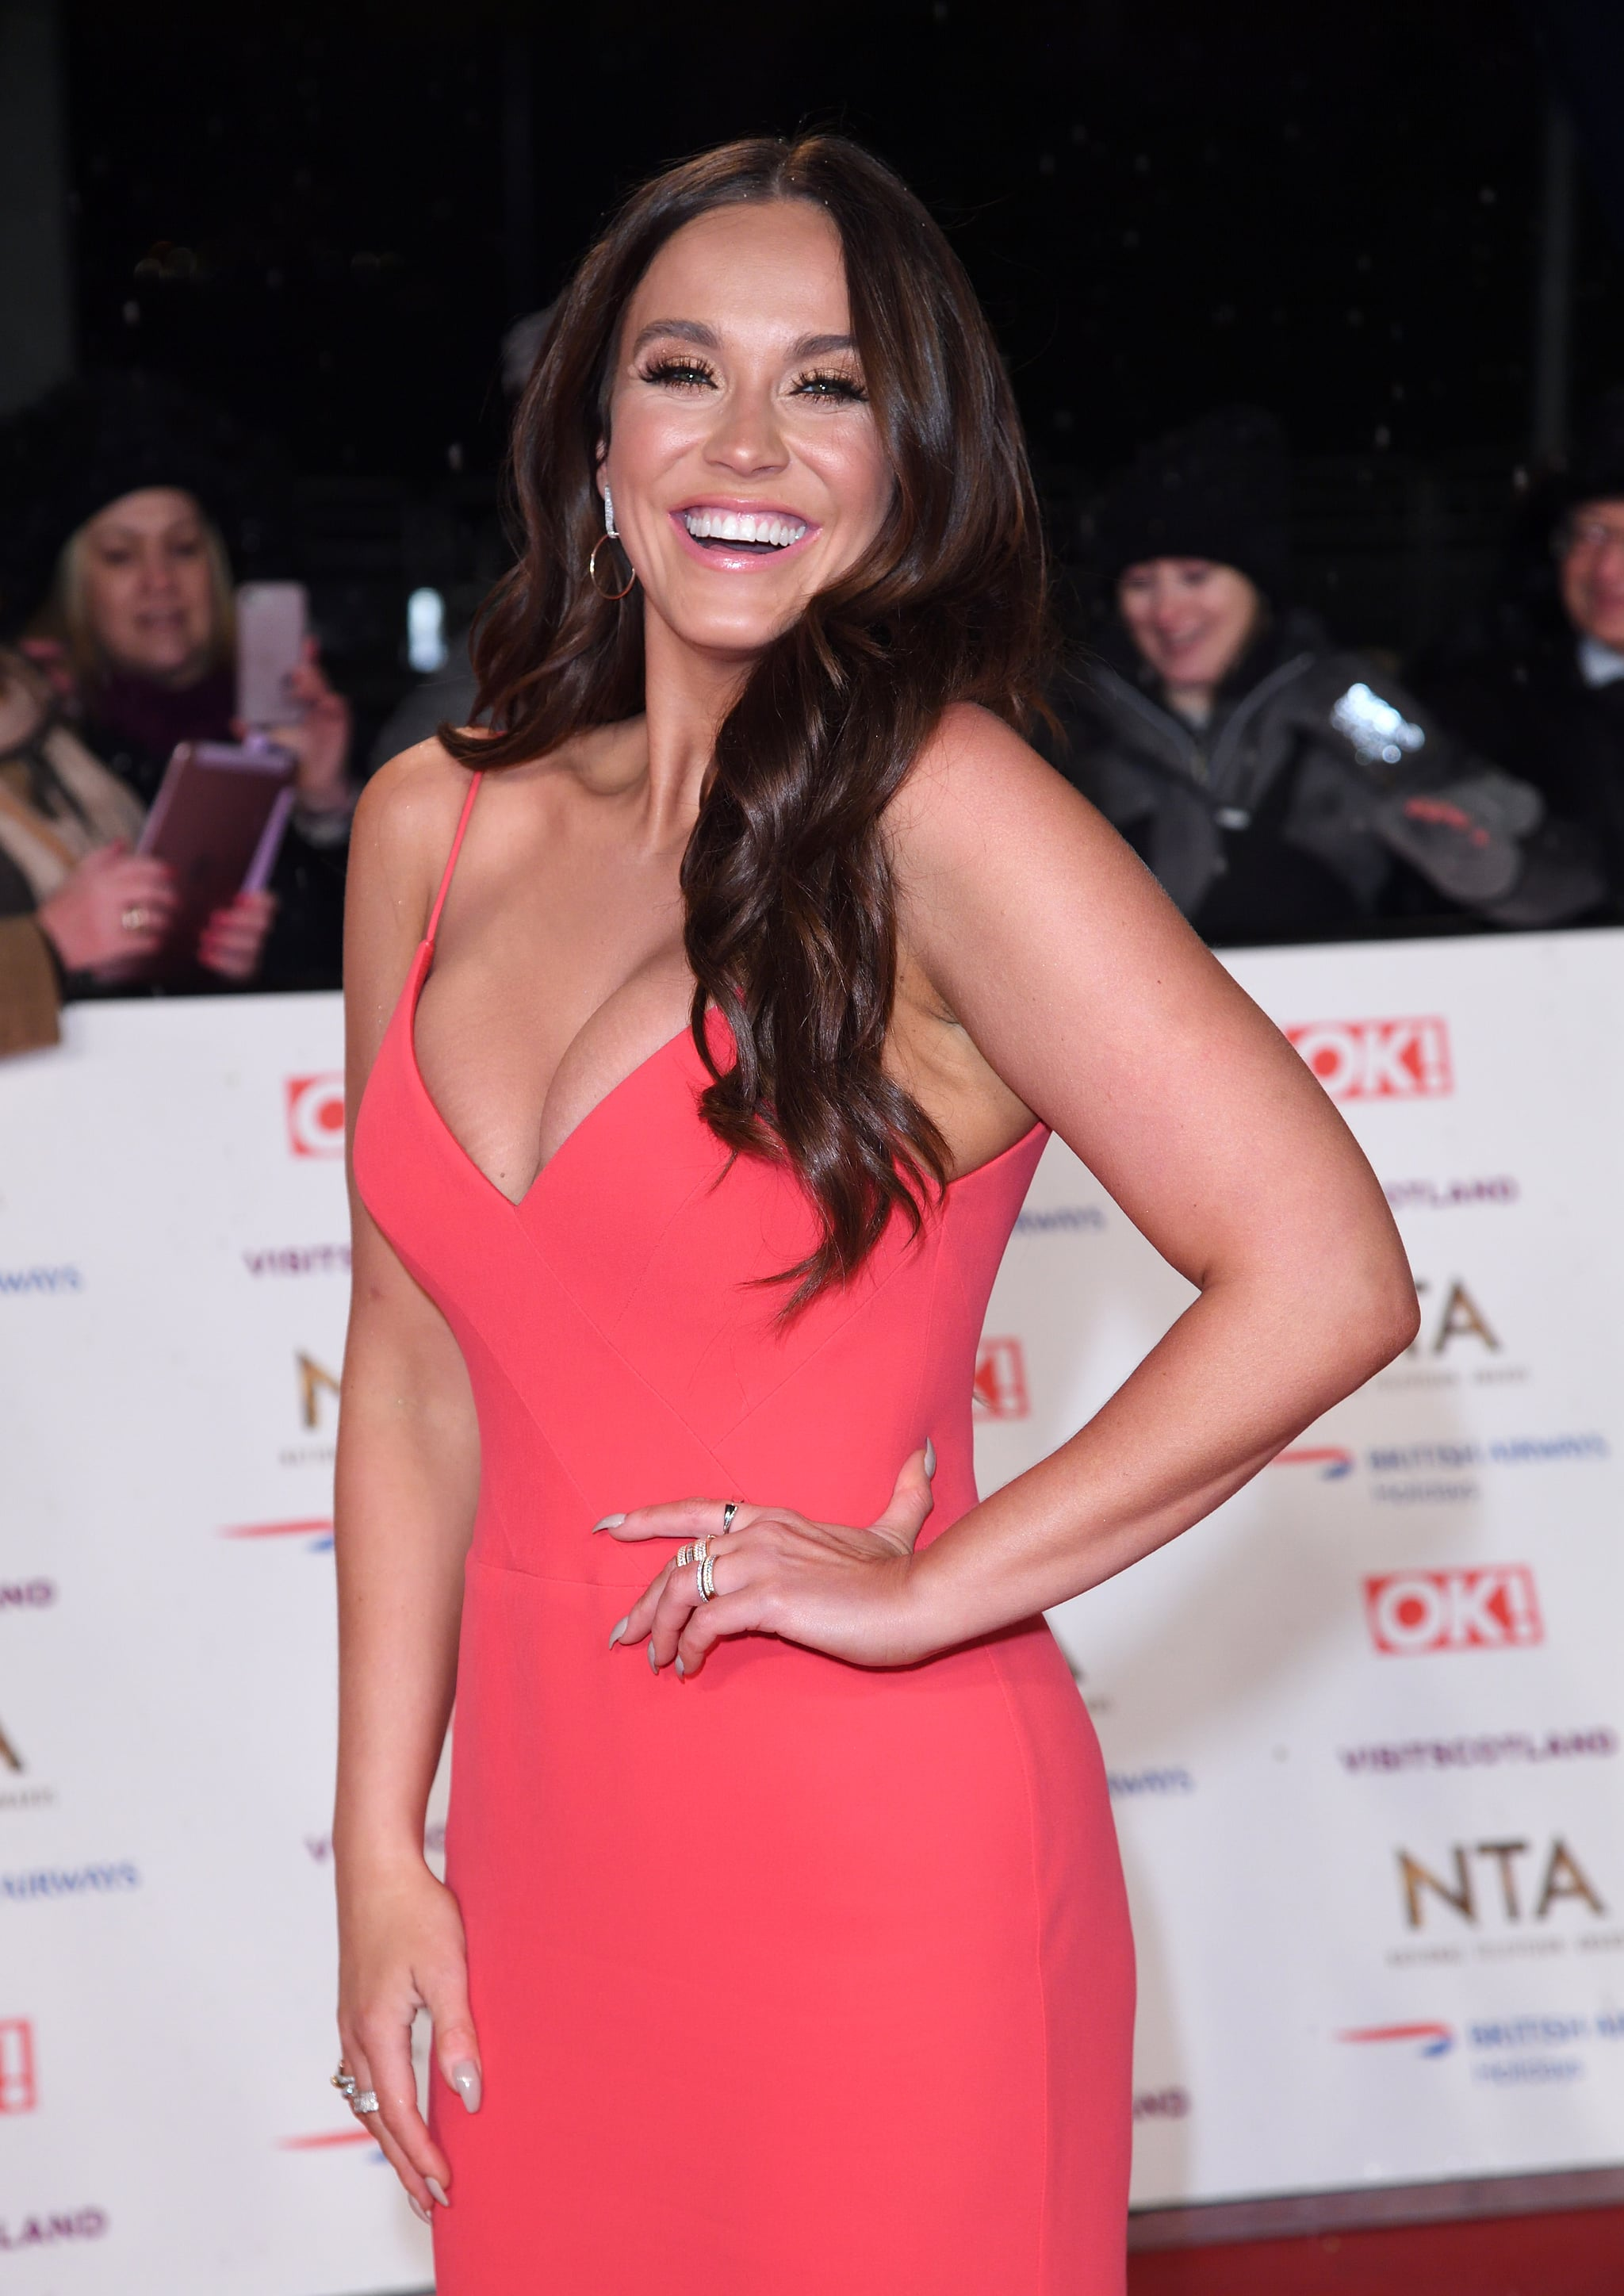 LONDON, ENGLAND - JANUARY 22:  Vicky Pattison attends the National Television Awards held at The O2 Arena on January 22, 2019 in London, England.  (Photo by Karwai Tang/WireImage)